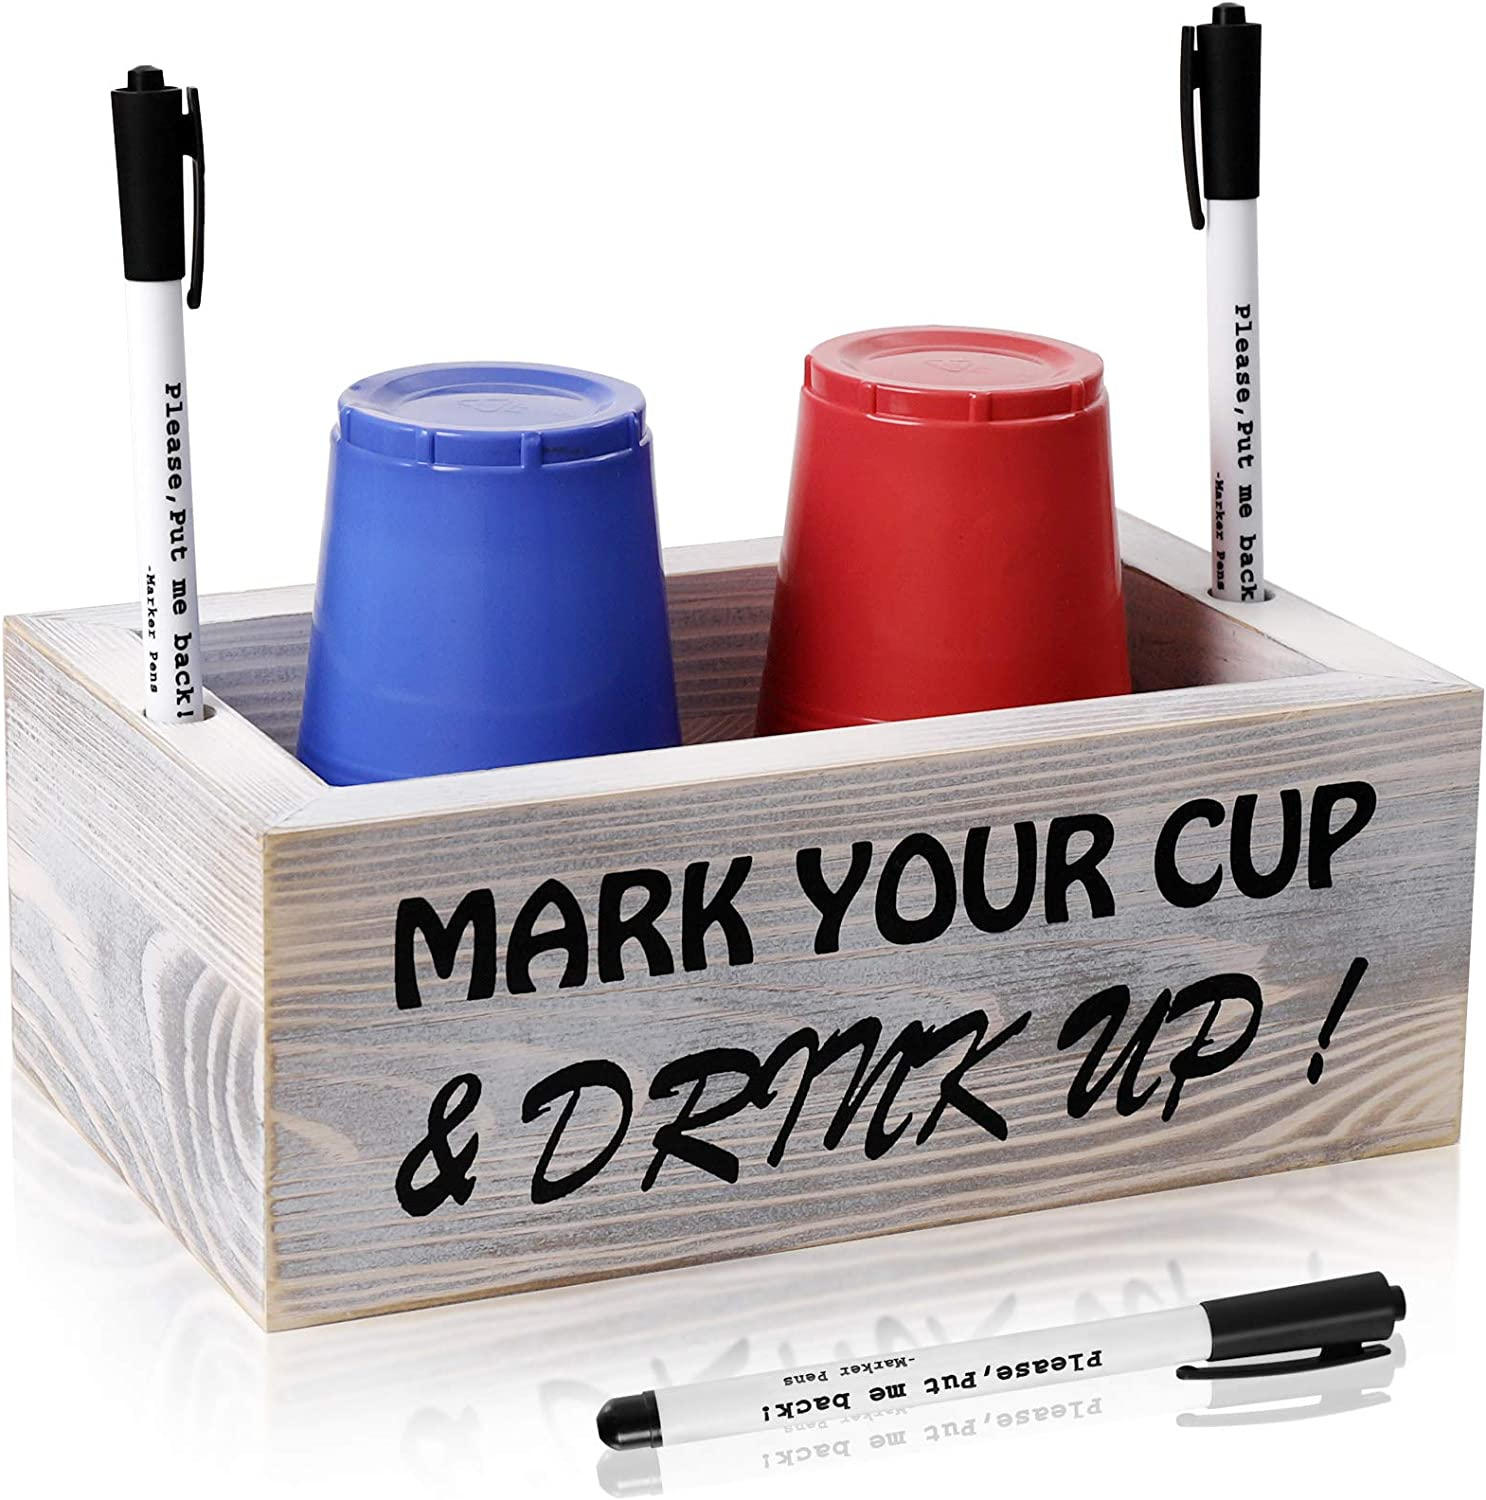 Double Solo Cup Holder with Marker Slot, Wood Party Cups Holder Includes 3 Markers- Mark Your Cup and Drink Up! Farmhouse Party Bar Rustic Wedding Decor(Double)